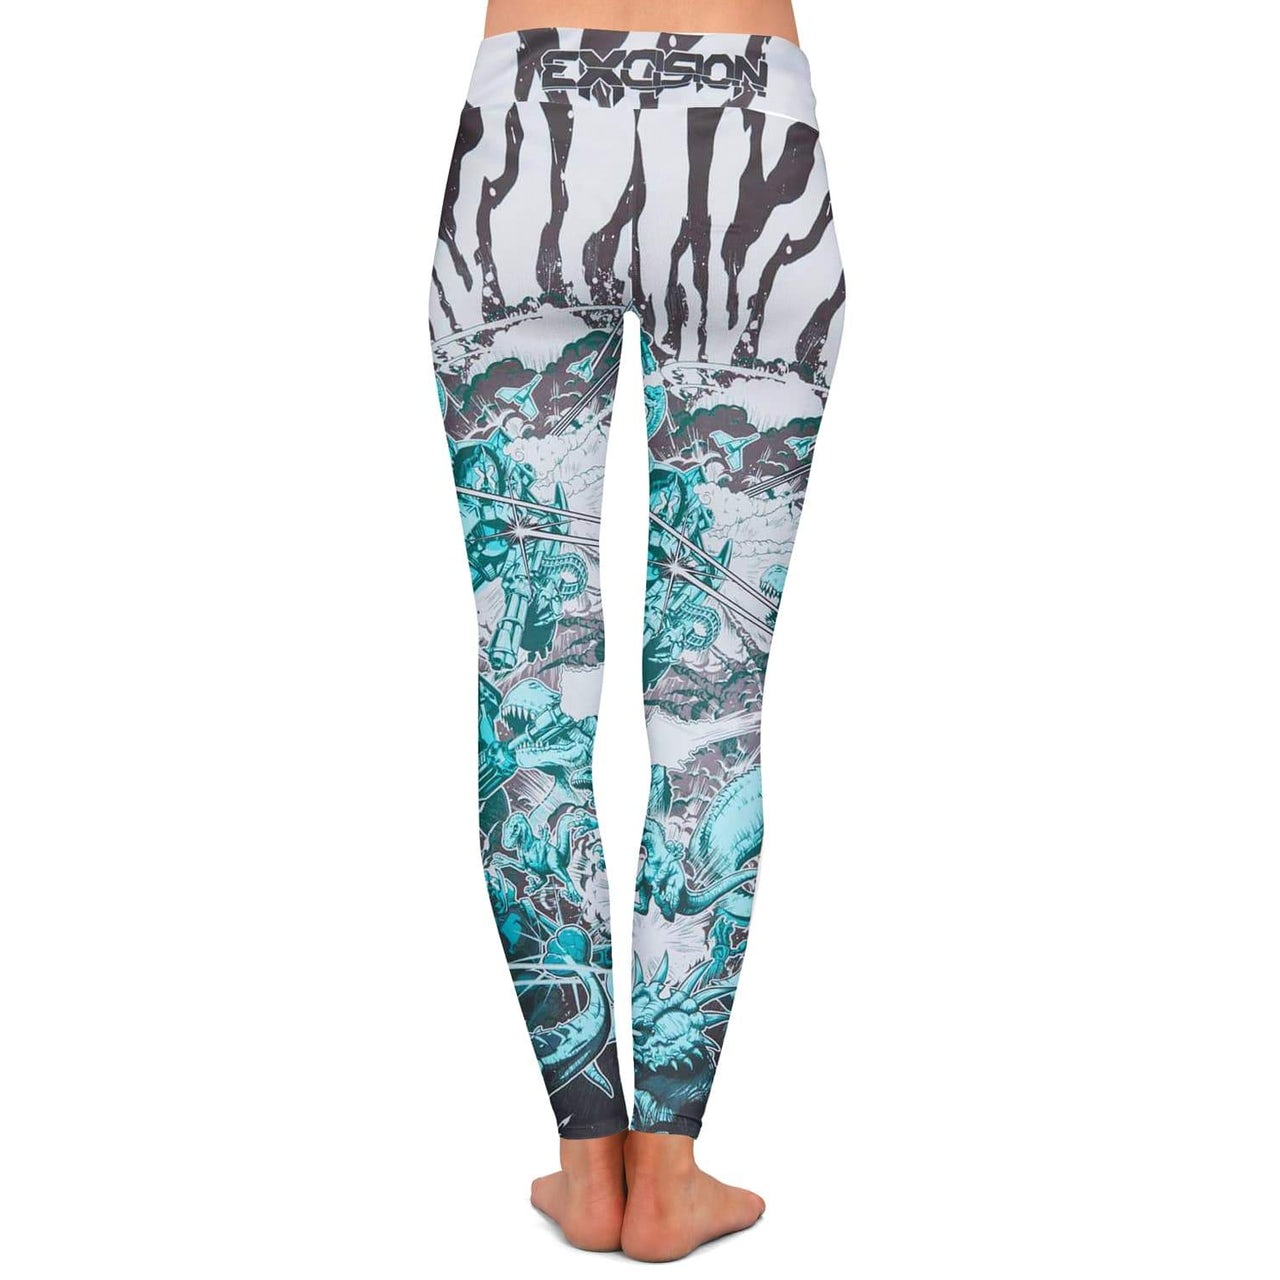 cf1a4d6f027e4 Excision 'Dino vs. Robot' Leggings - Teal. Touch to zoom